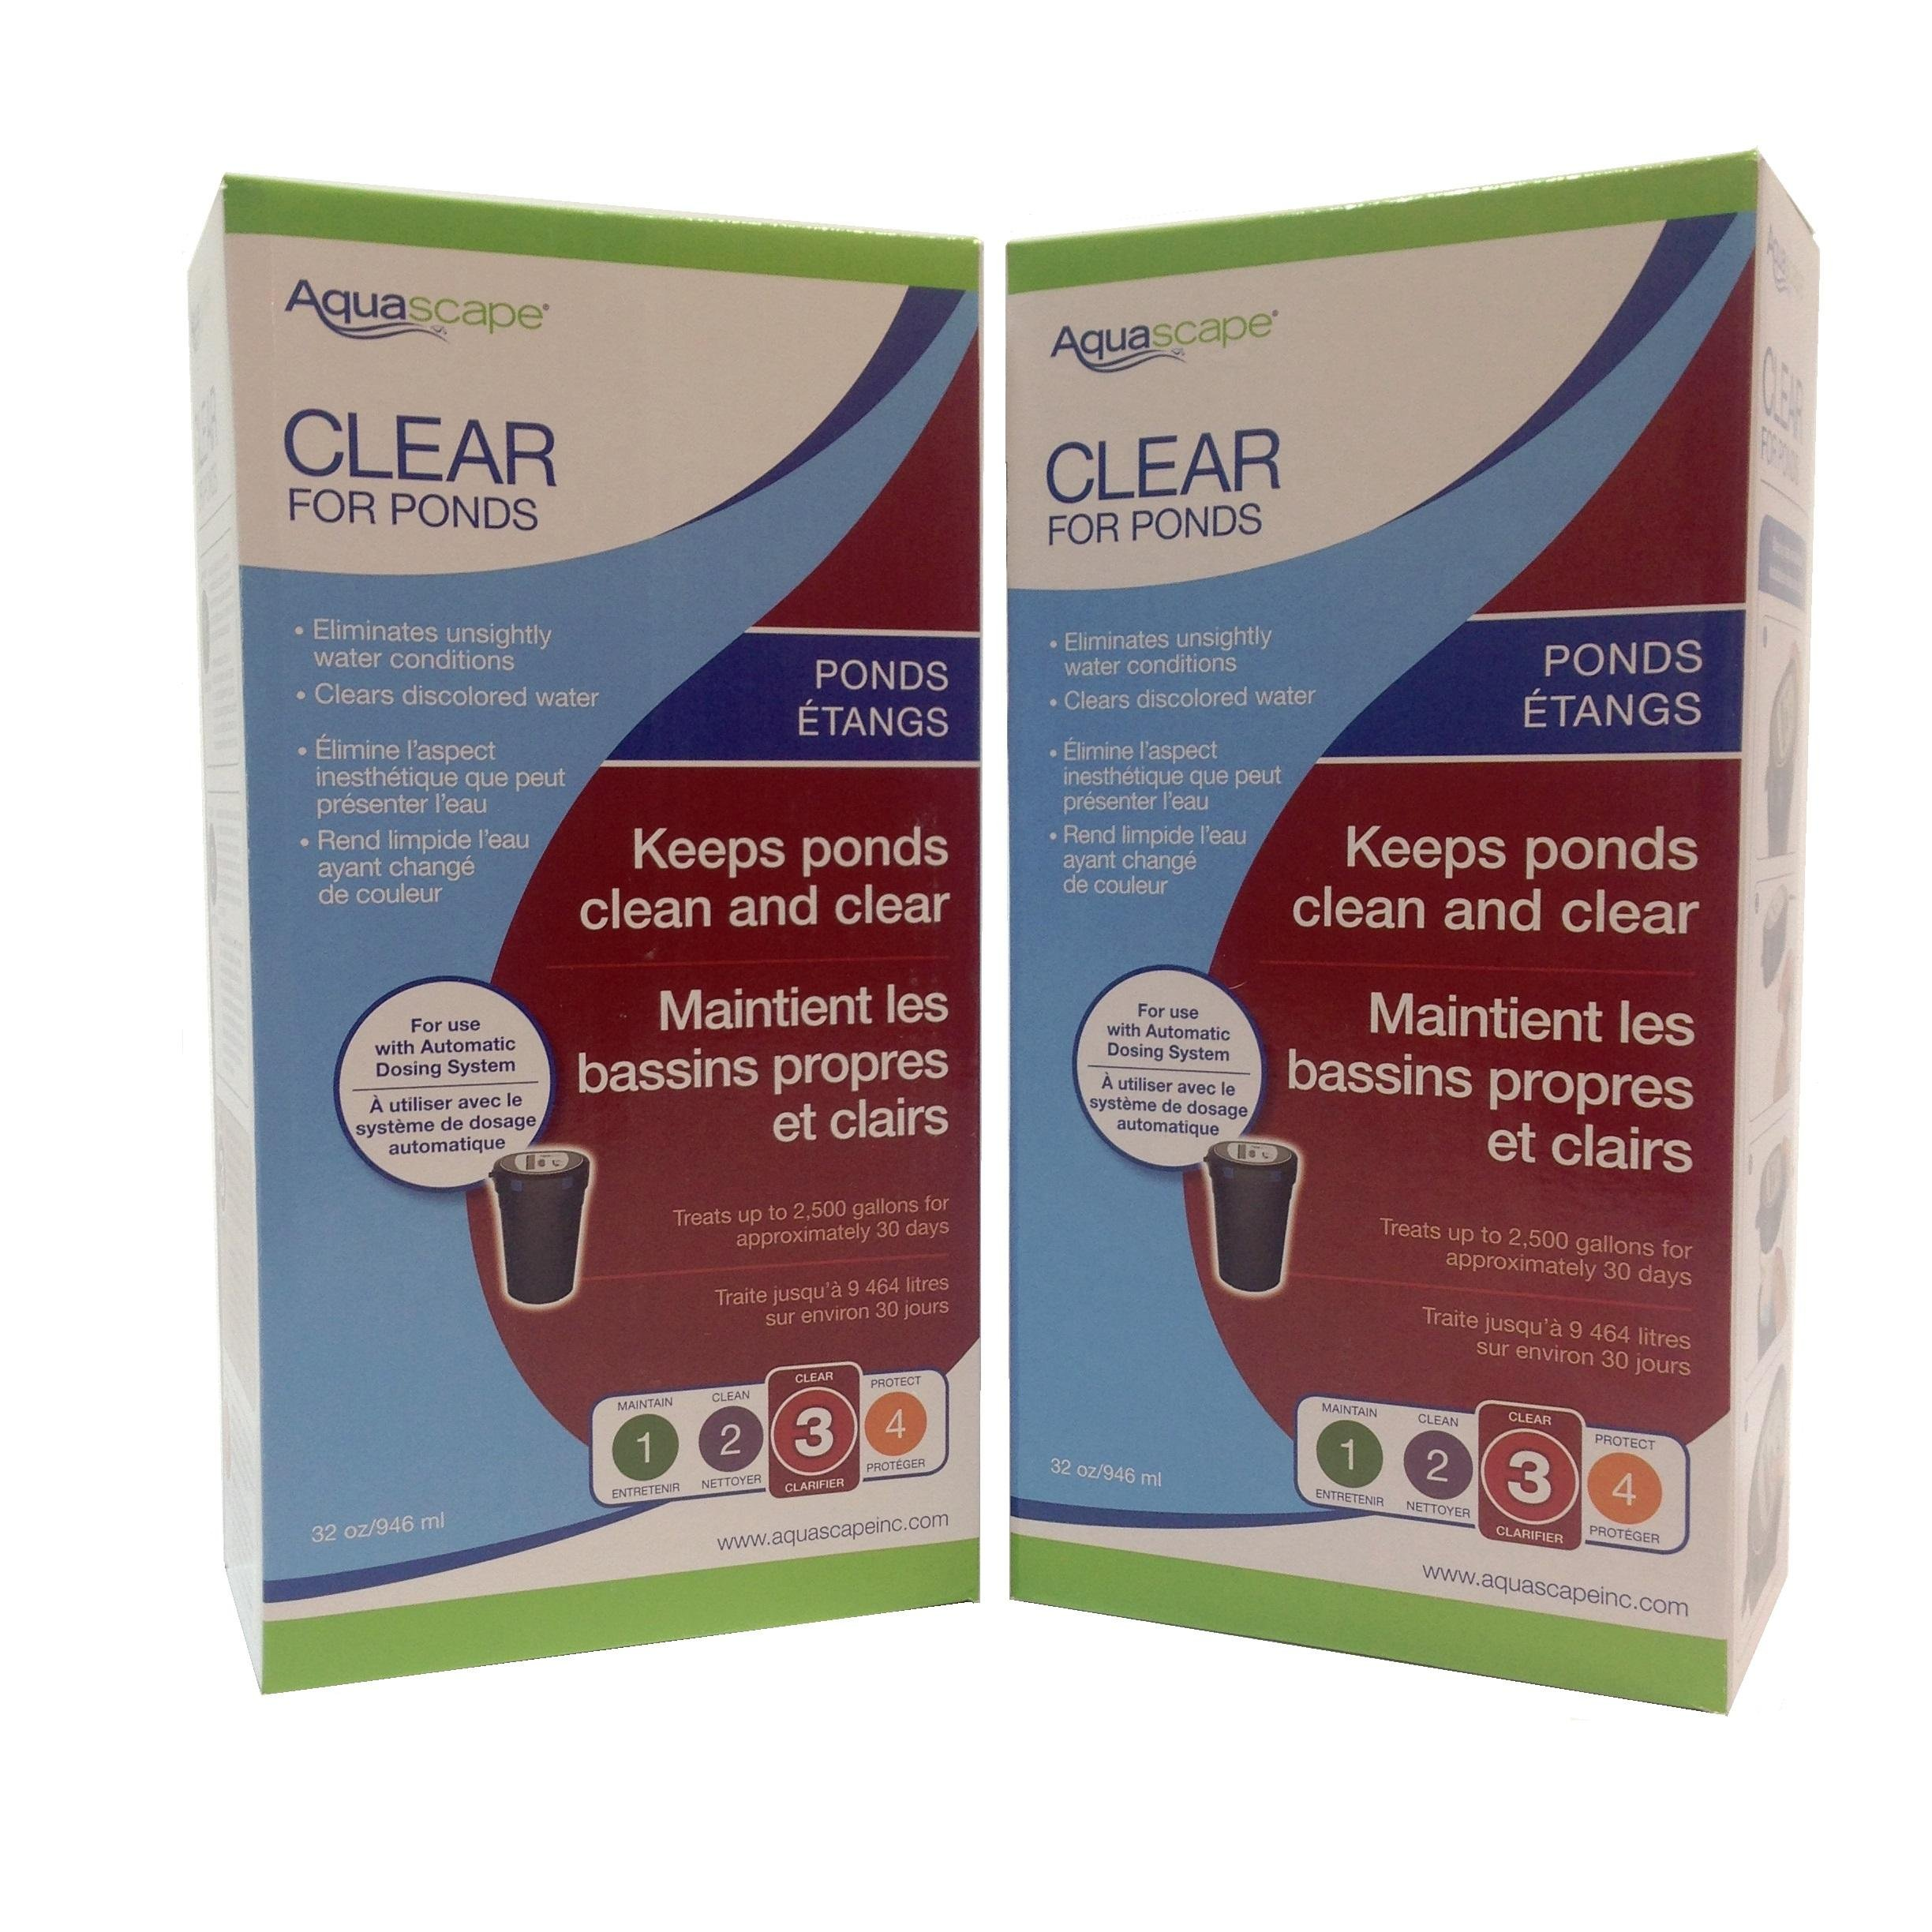 GREEN VISTA 2-PACK OF CLEAR FOR PONDS 32 OUNCE REFILL for Aquascape Automatic Dosing System Clarifies Water with Fish and Plants Safely